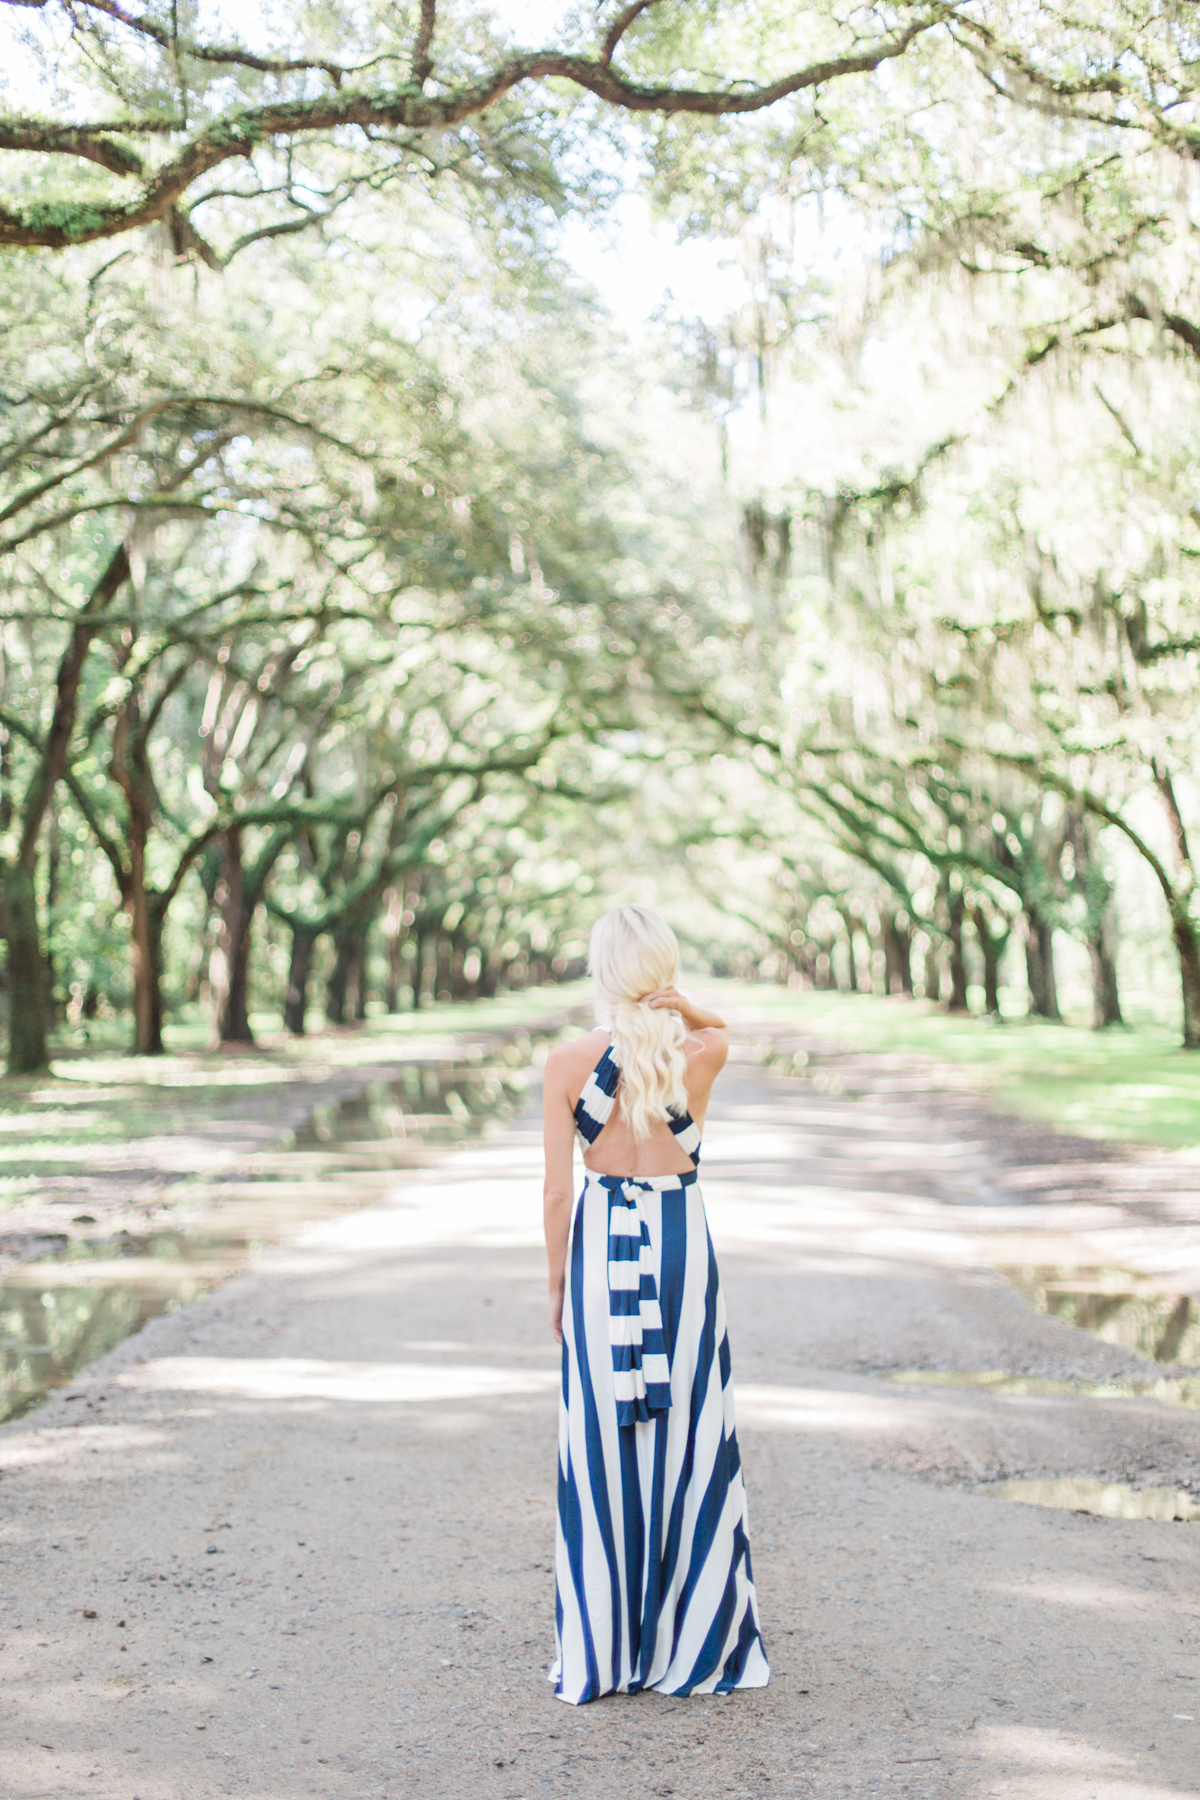 McKenna_Bleu_Fashion_Travel_Blog_Savannah_Georgia_photo-172 (1)